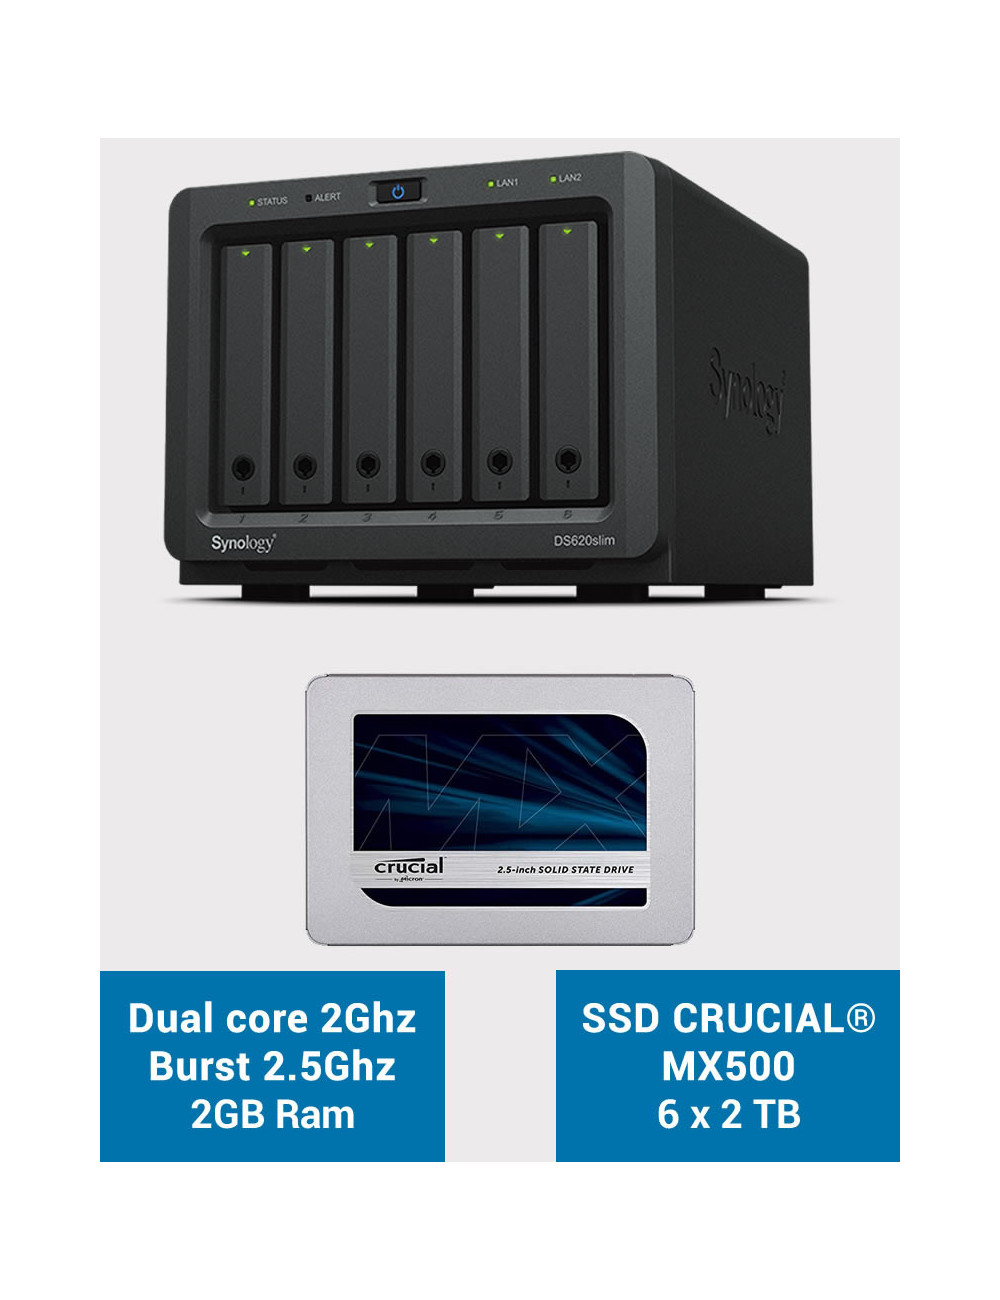 Synology DS620SLIM Serveur NAS Full SSD CRUCIAL MX500 12To (6 x 2To)